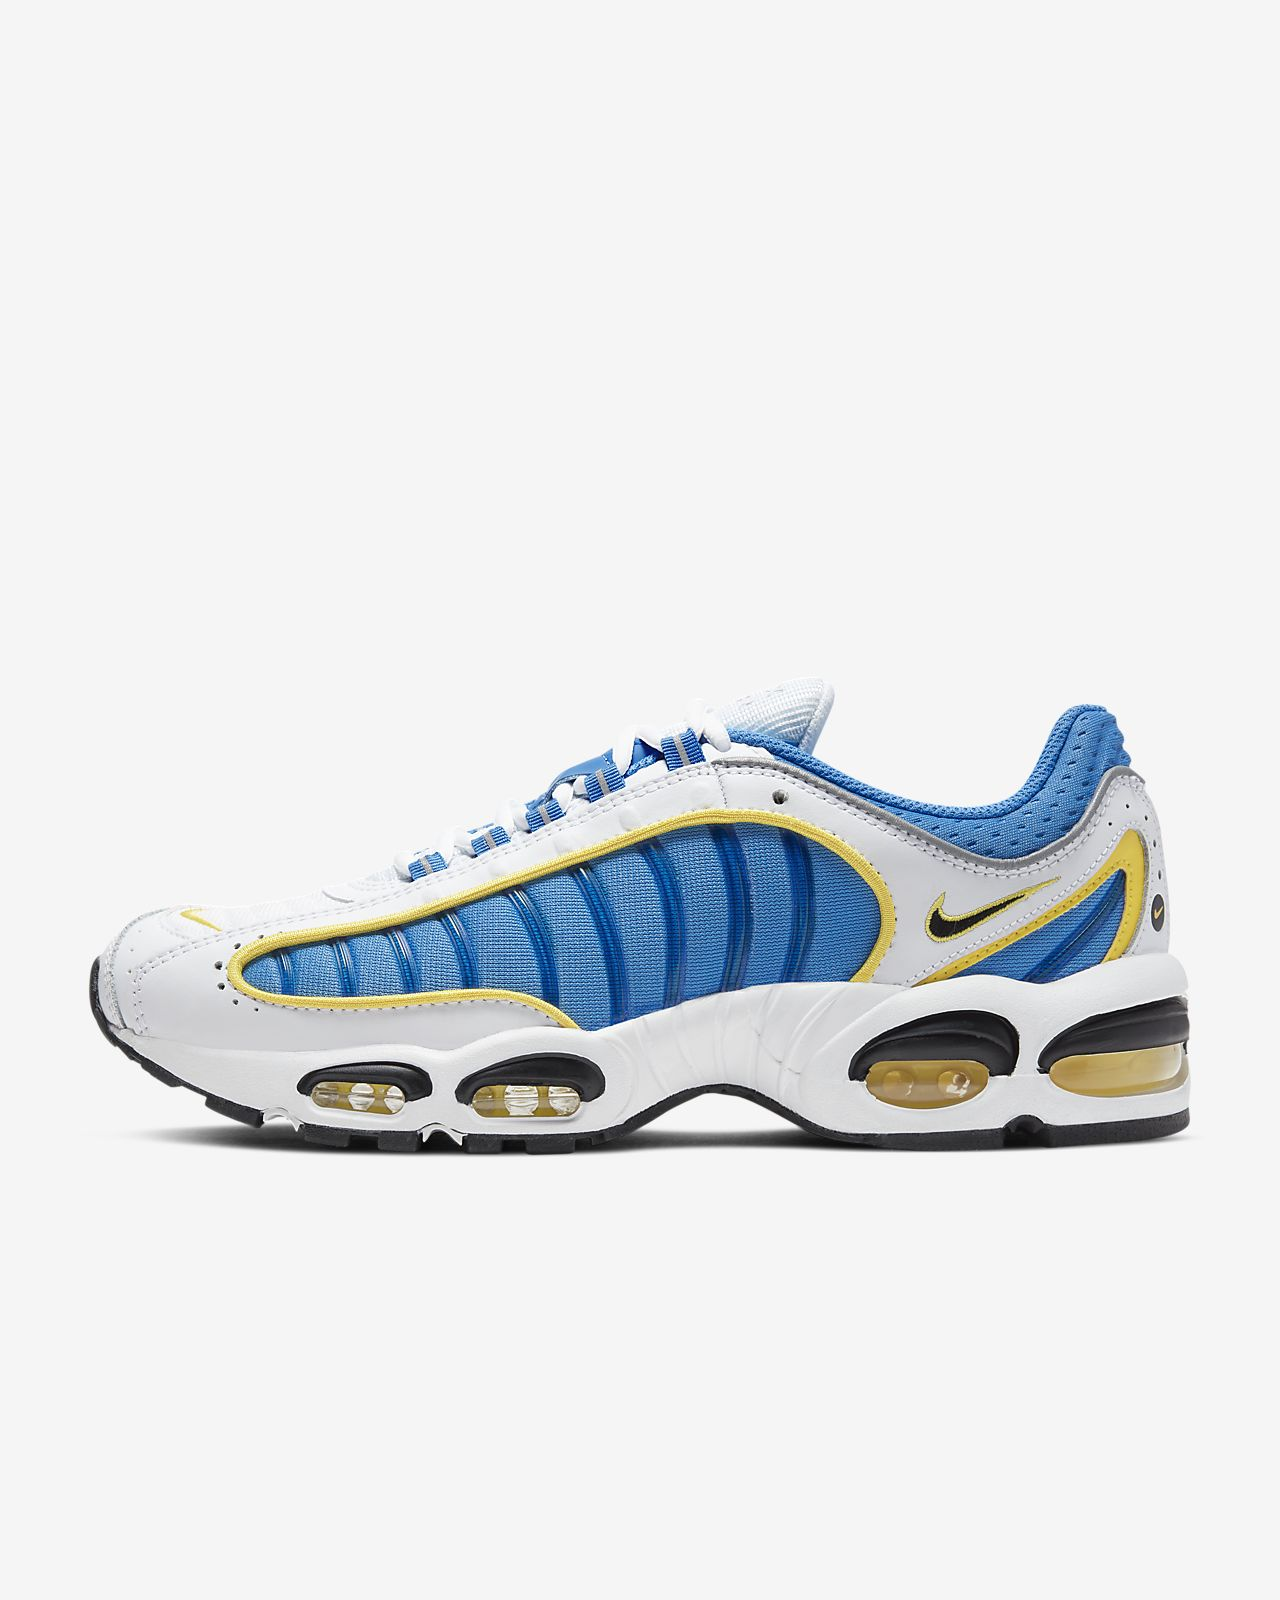 Shop Nike Air Max Tail Wind IV men's Running Shoes, New